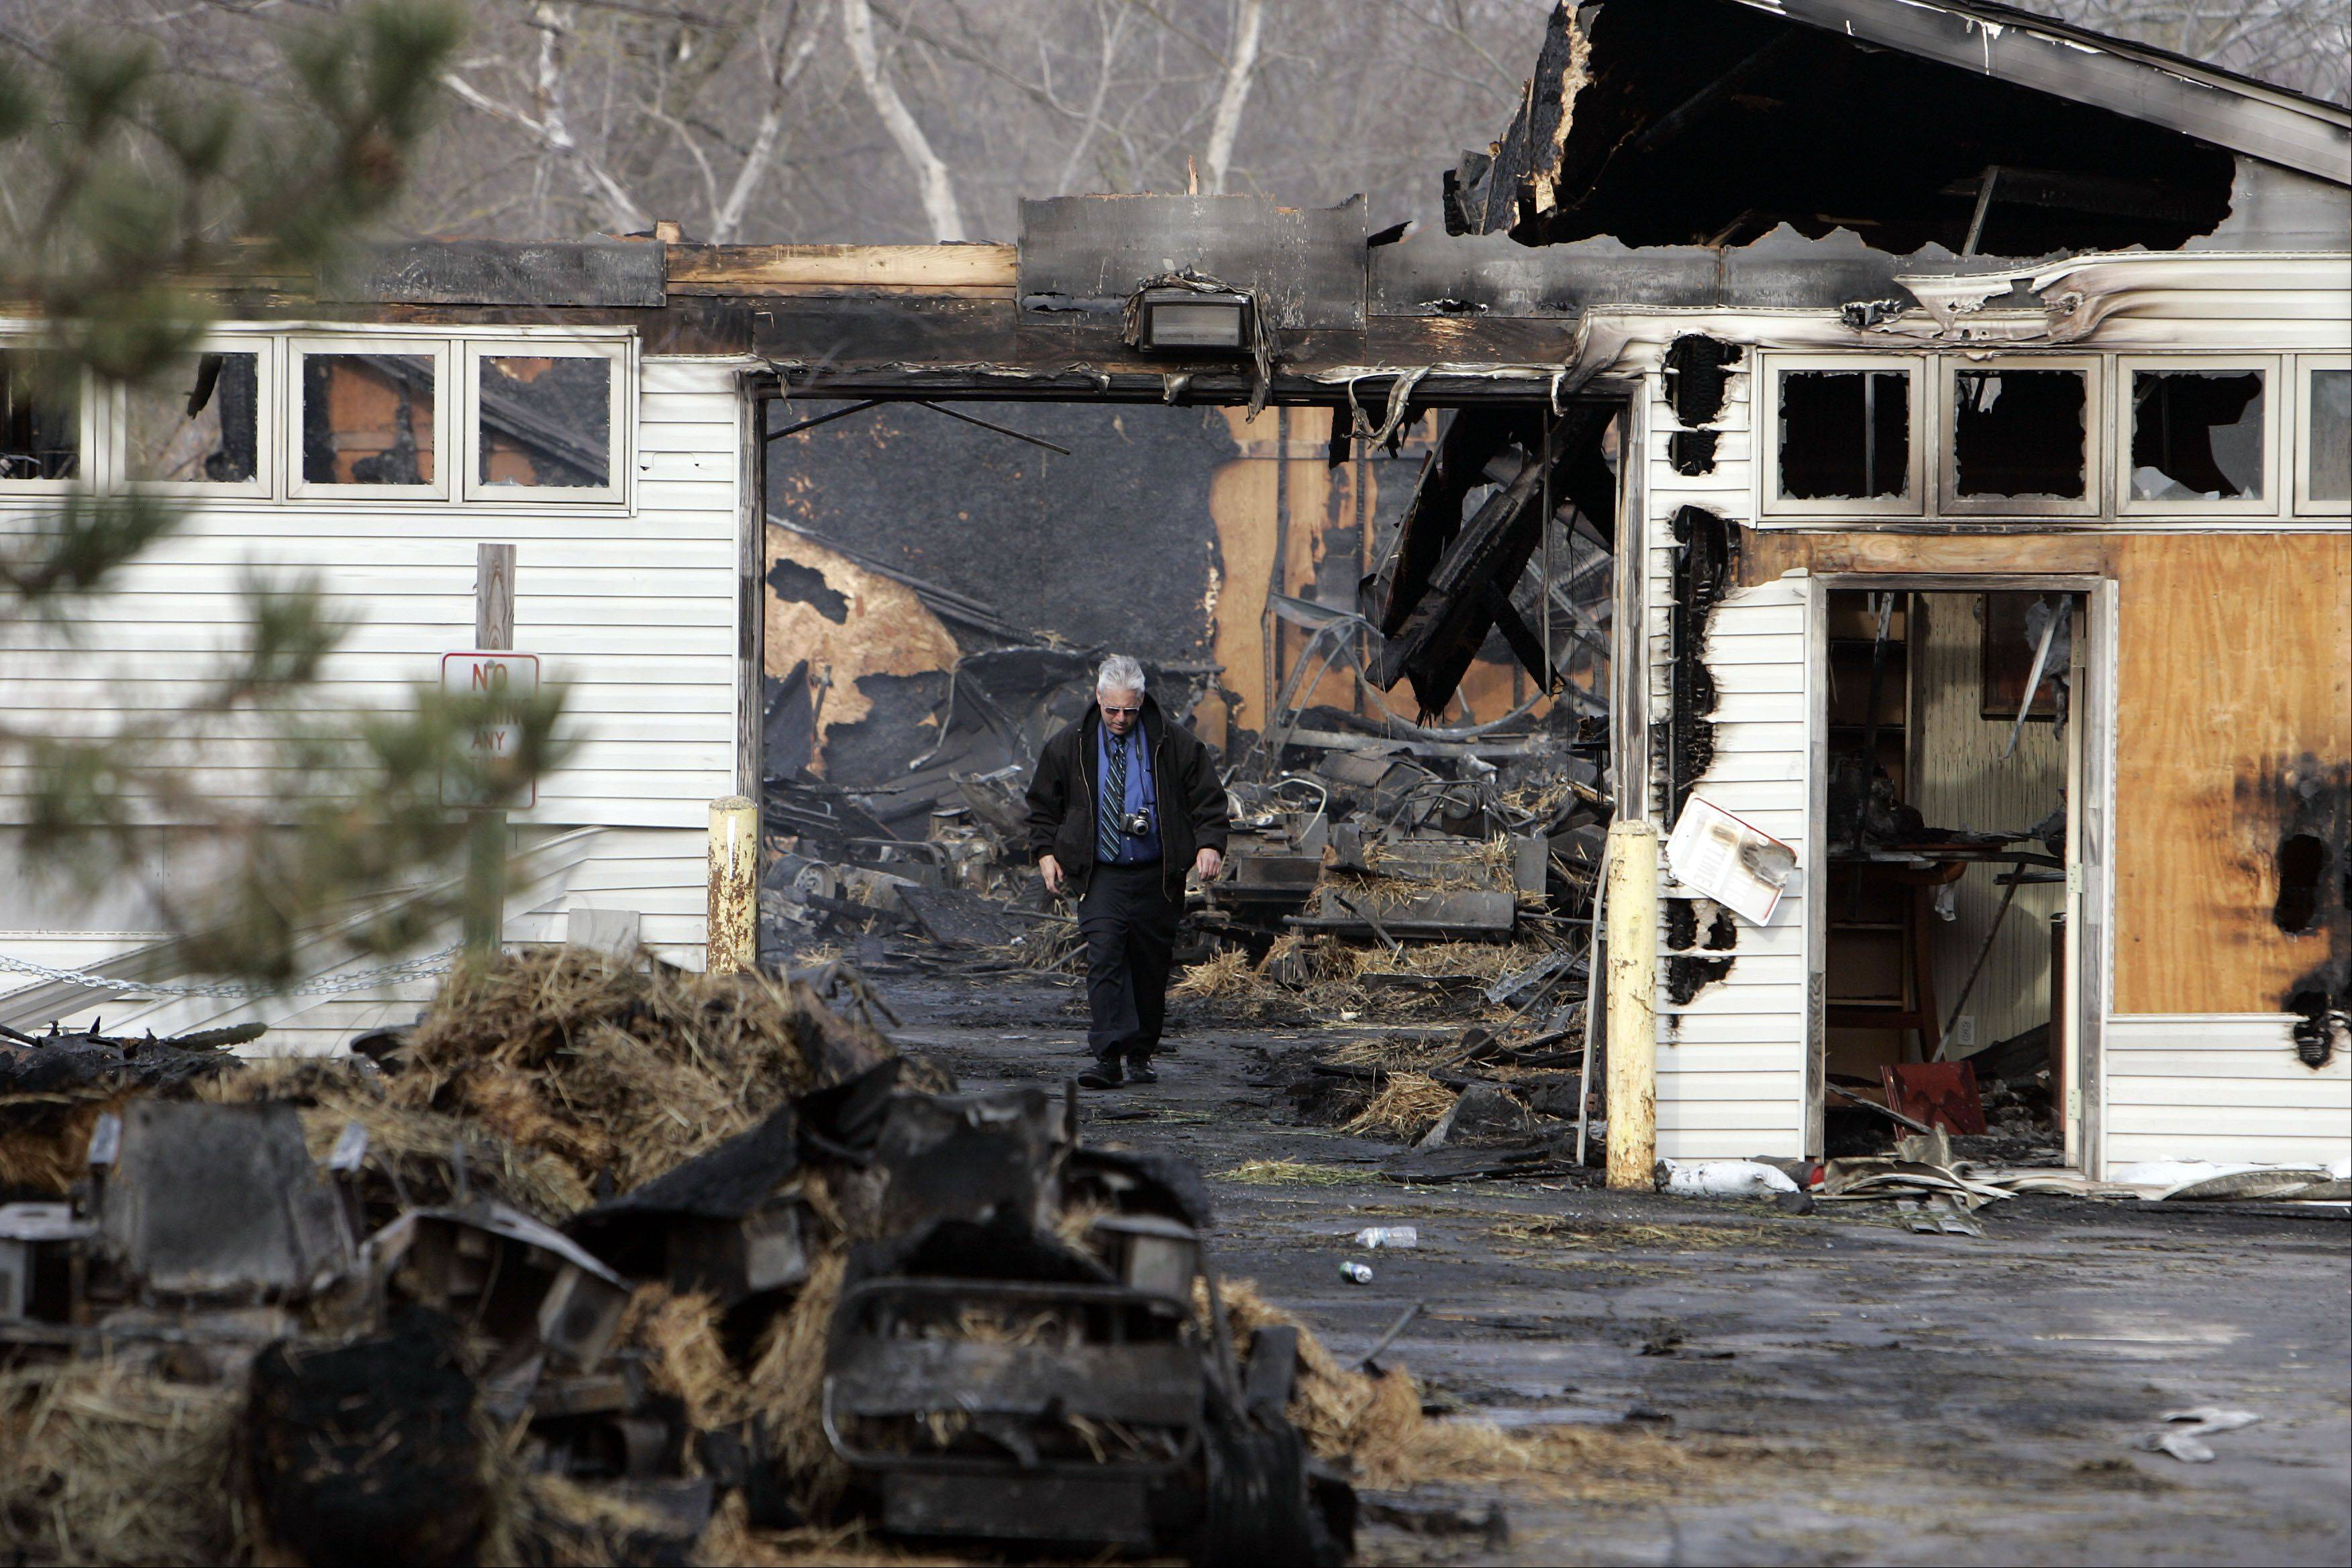 An unidentified man walks through what is left of a warehouse of Trinity Landscape of Northern Illinois, where its owner, Kurt Cina, died in a fire Friday evening.